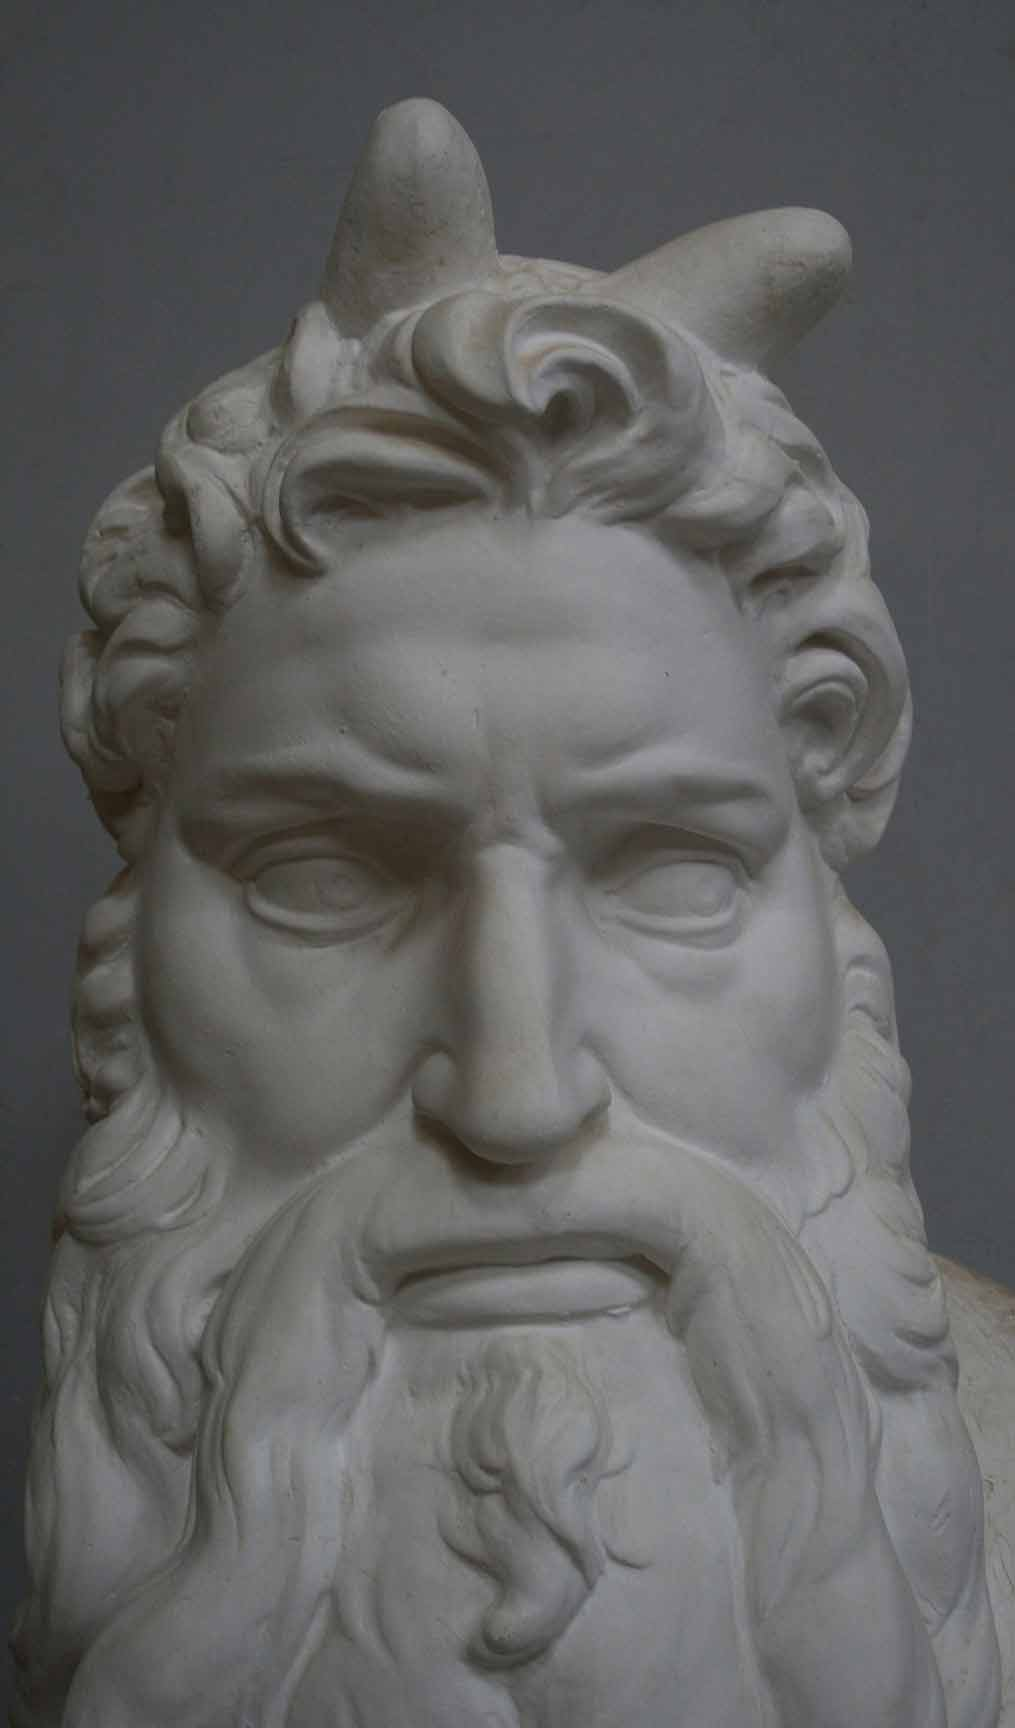 closeup photo of plaster cast bust of man with curly hair and so-called horns and long beard on gray background